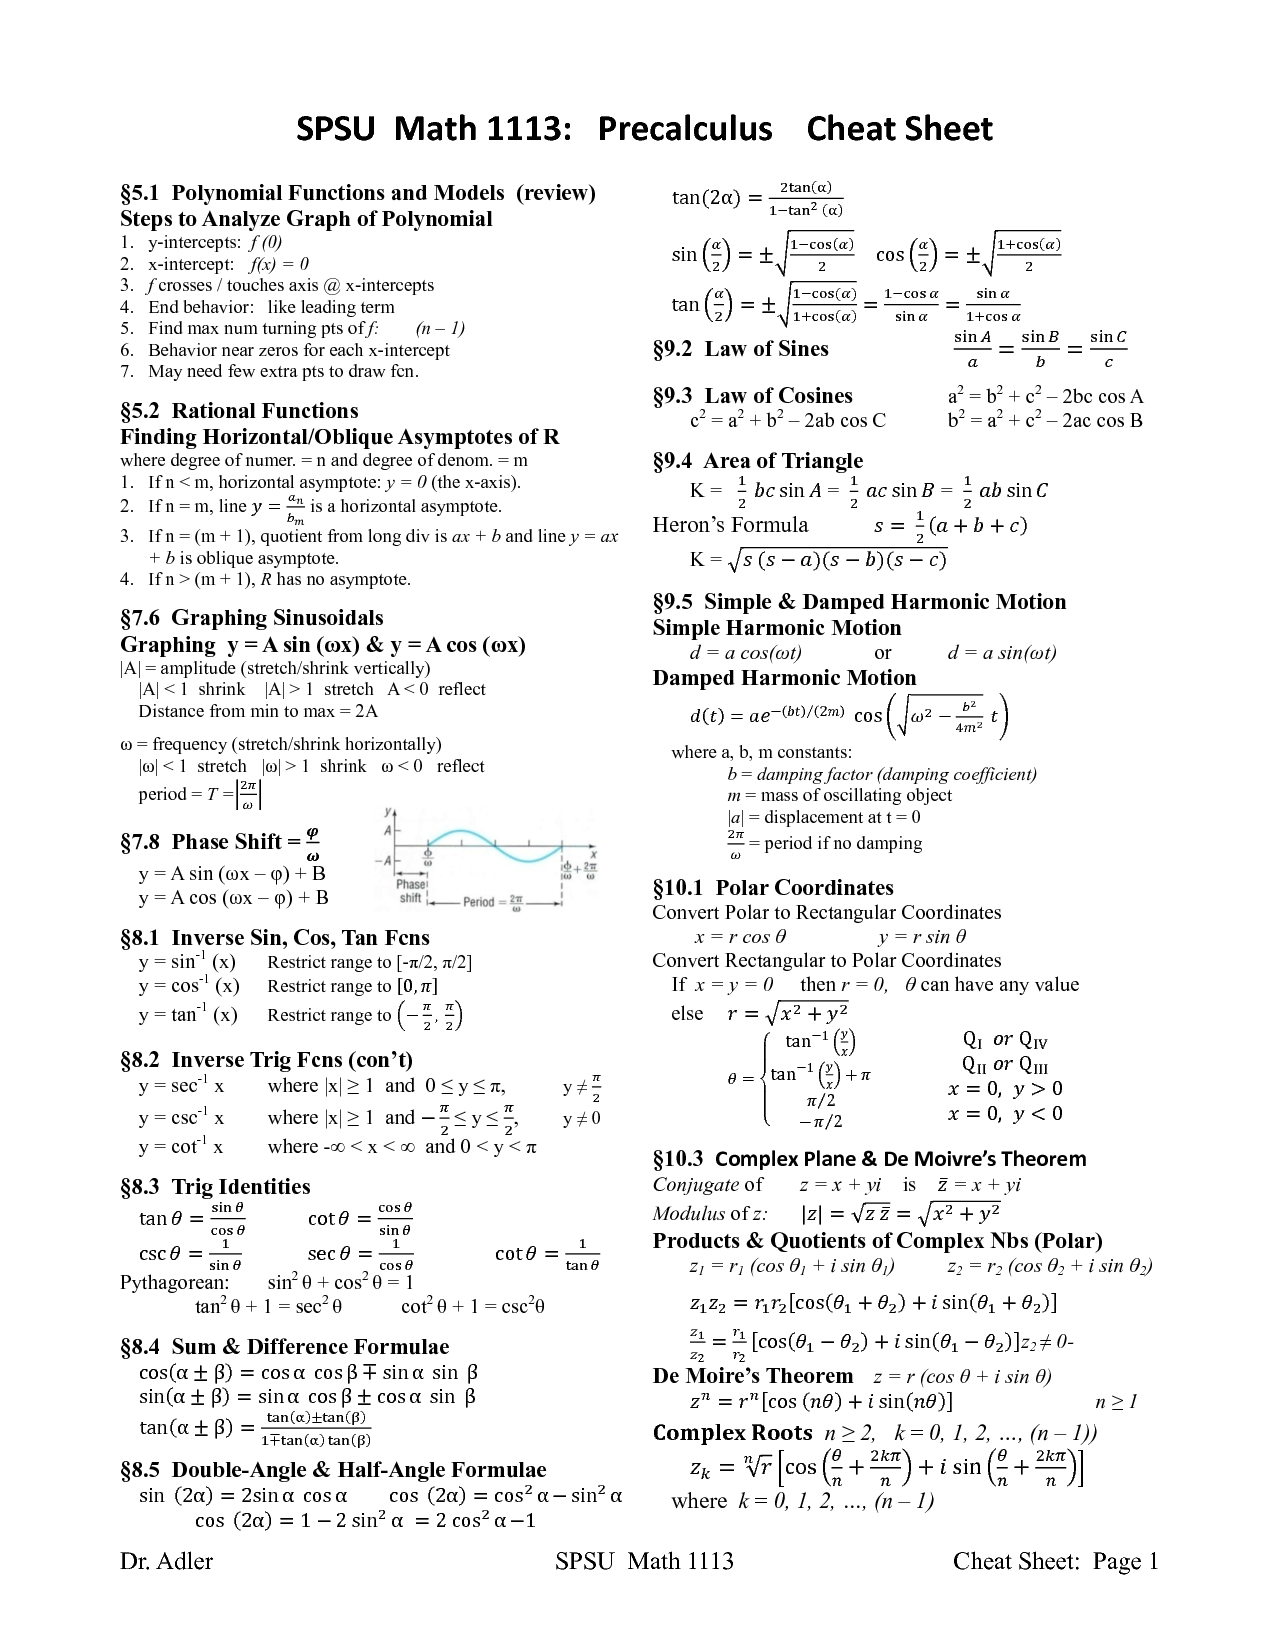 Spsu Math Precalculus Cheat Sheet